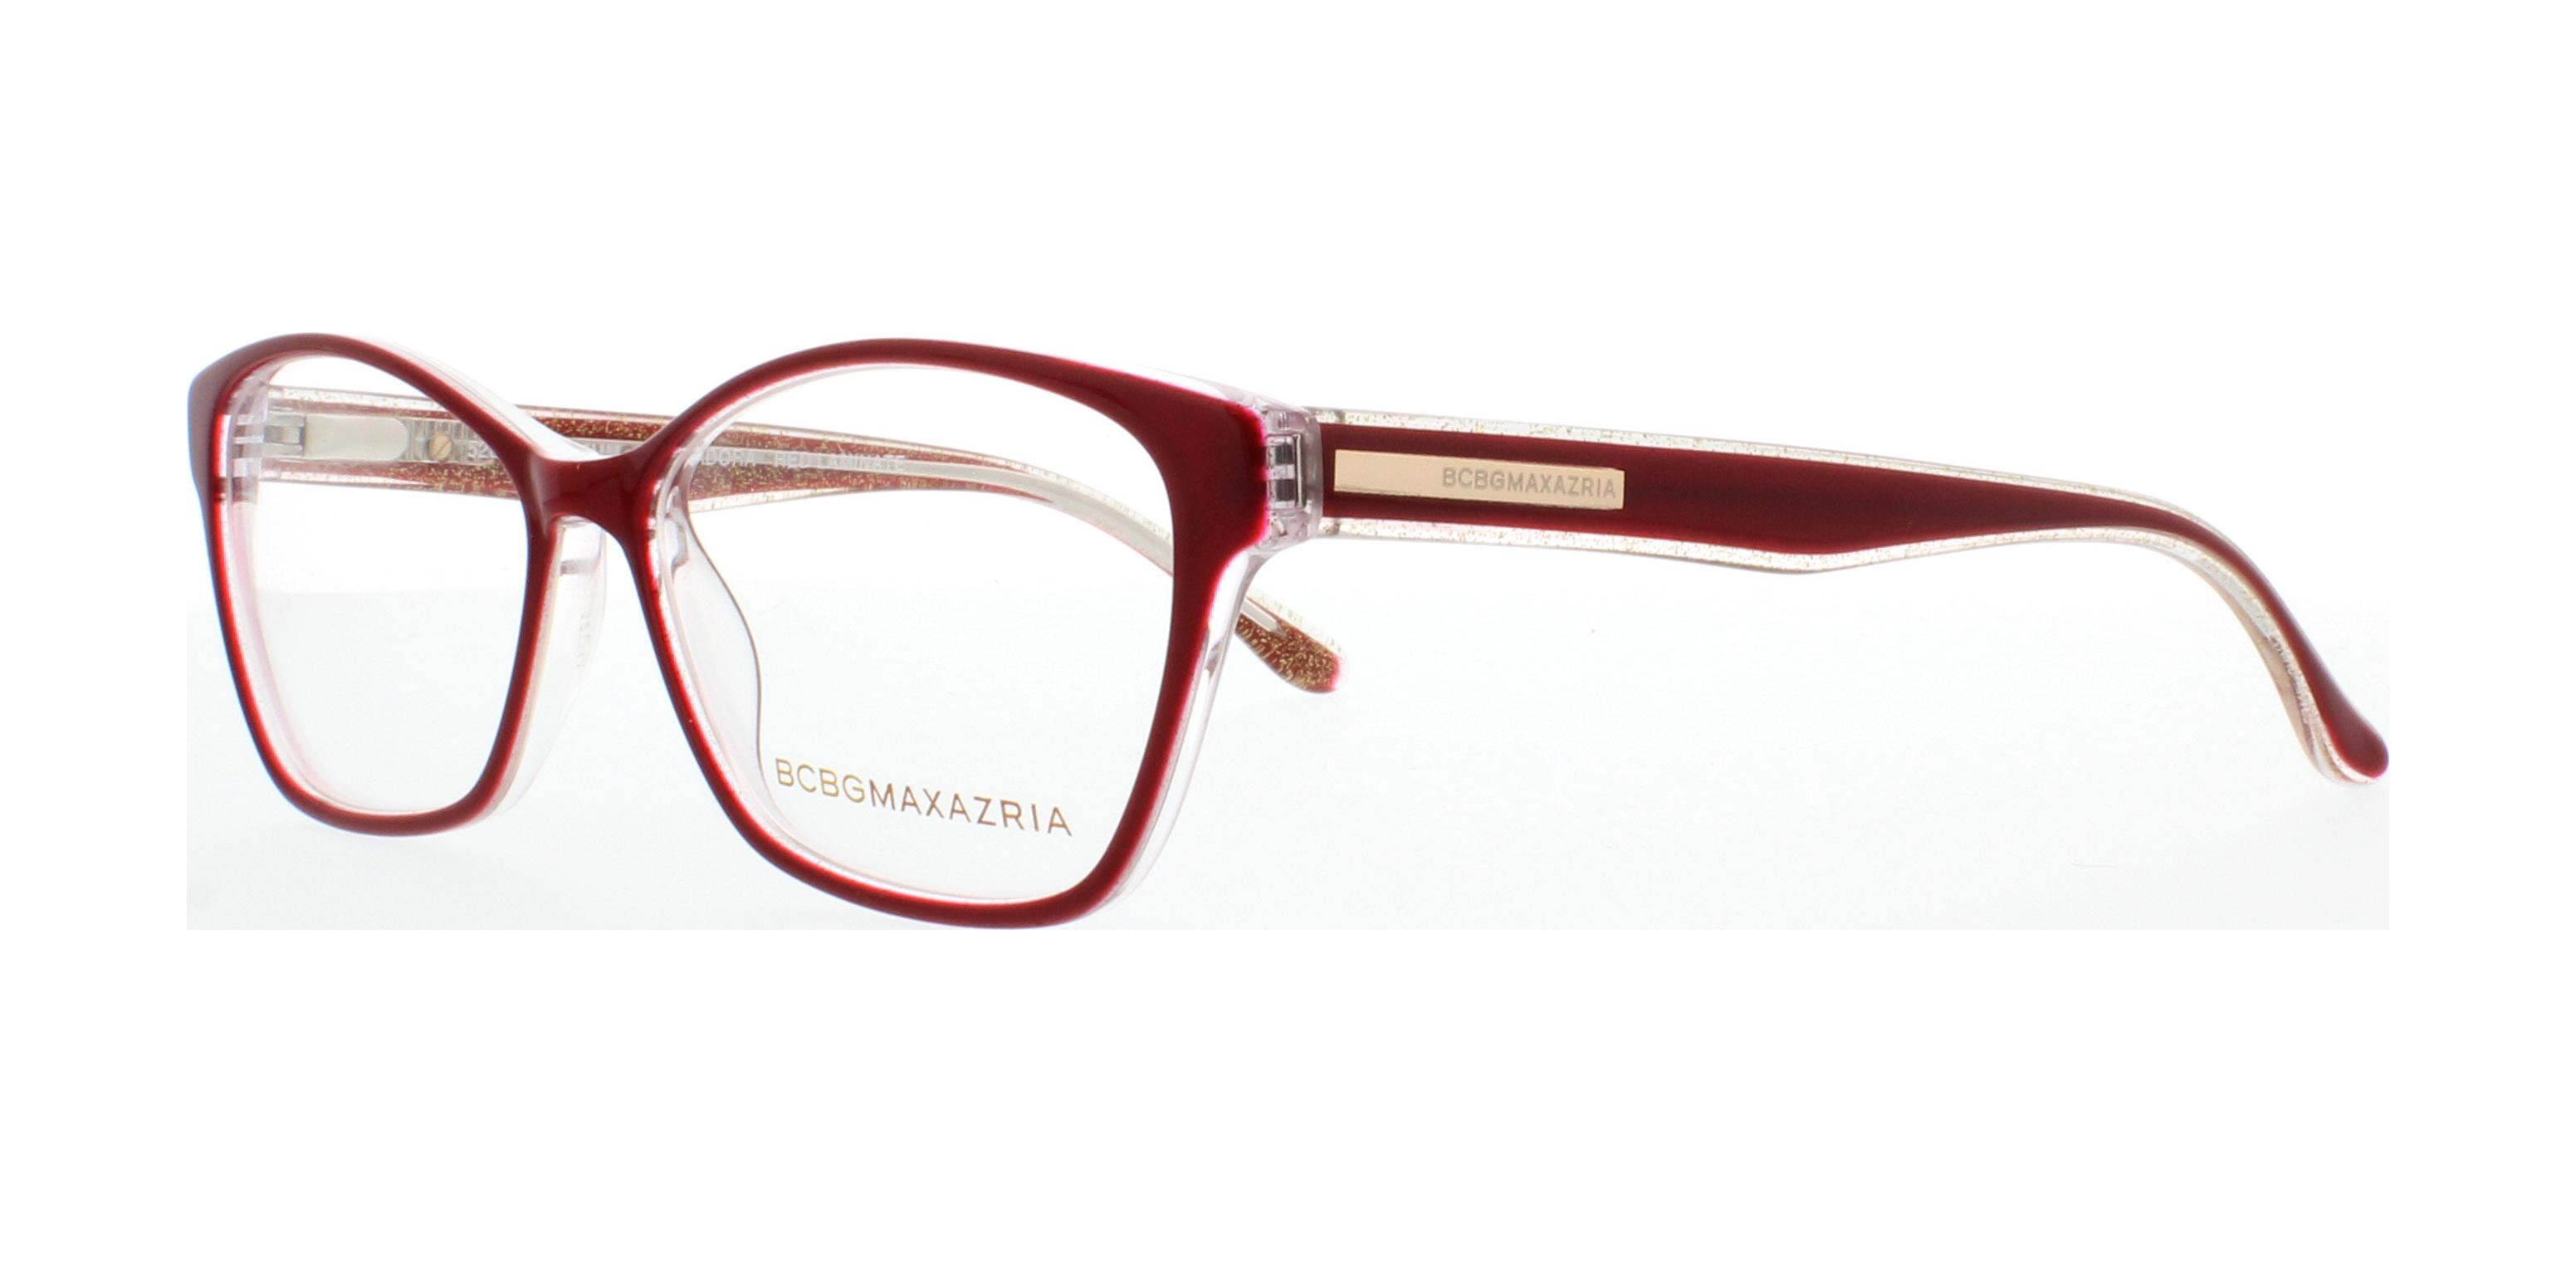 BCBGMAXAZRIA Eyeglasses ISADORA RED LAMINATE 52MM 886453378053 | eBay